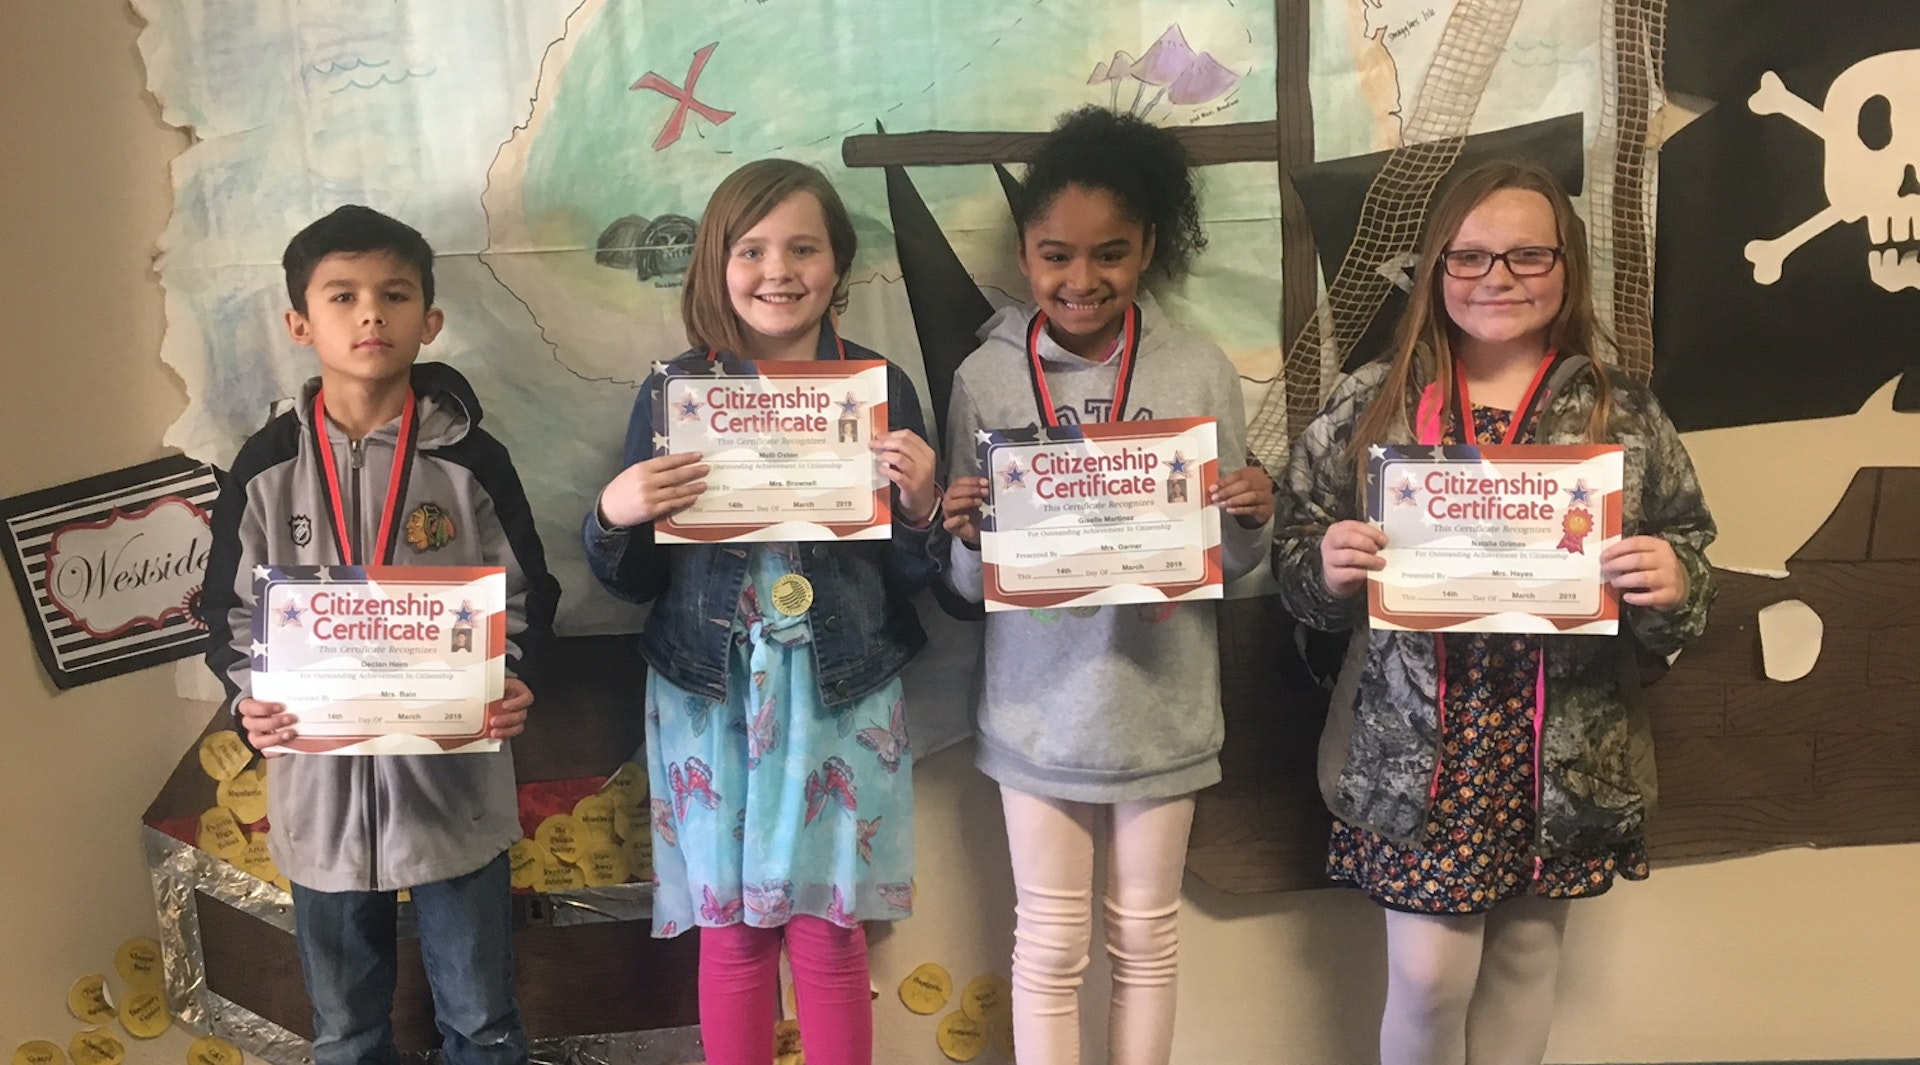 5th Grade children holding citizenship award